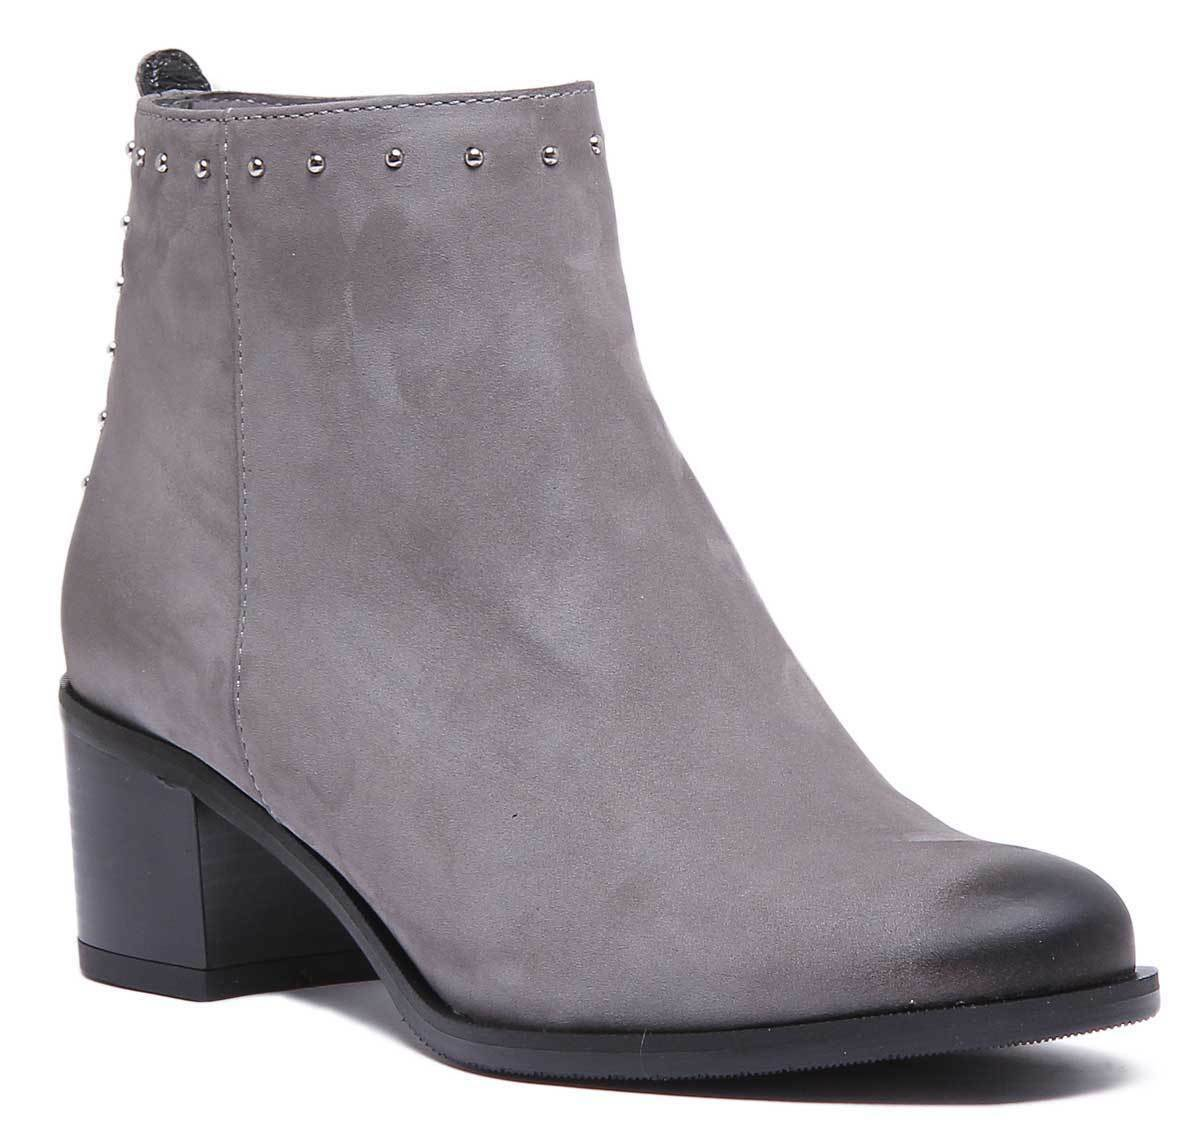 Justin Reece Ladies Studd Mid Heel Leather Pointed Boot Grey Size UK 3 - 8